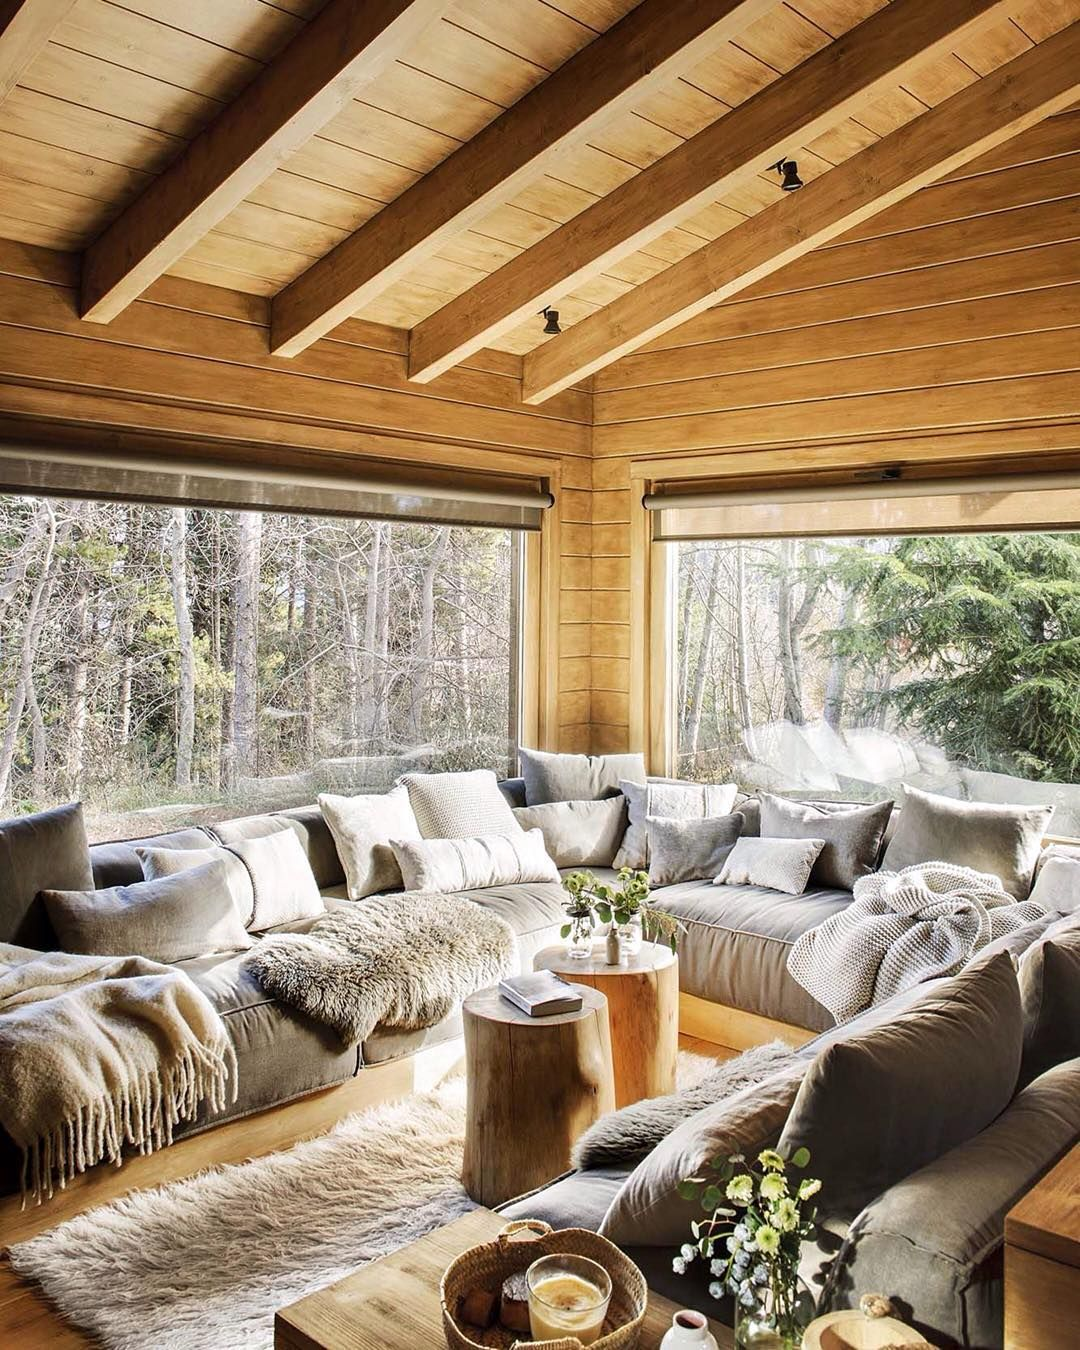 East Perry On Instagram Super Cozy Cabin Goals Via